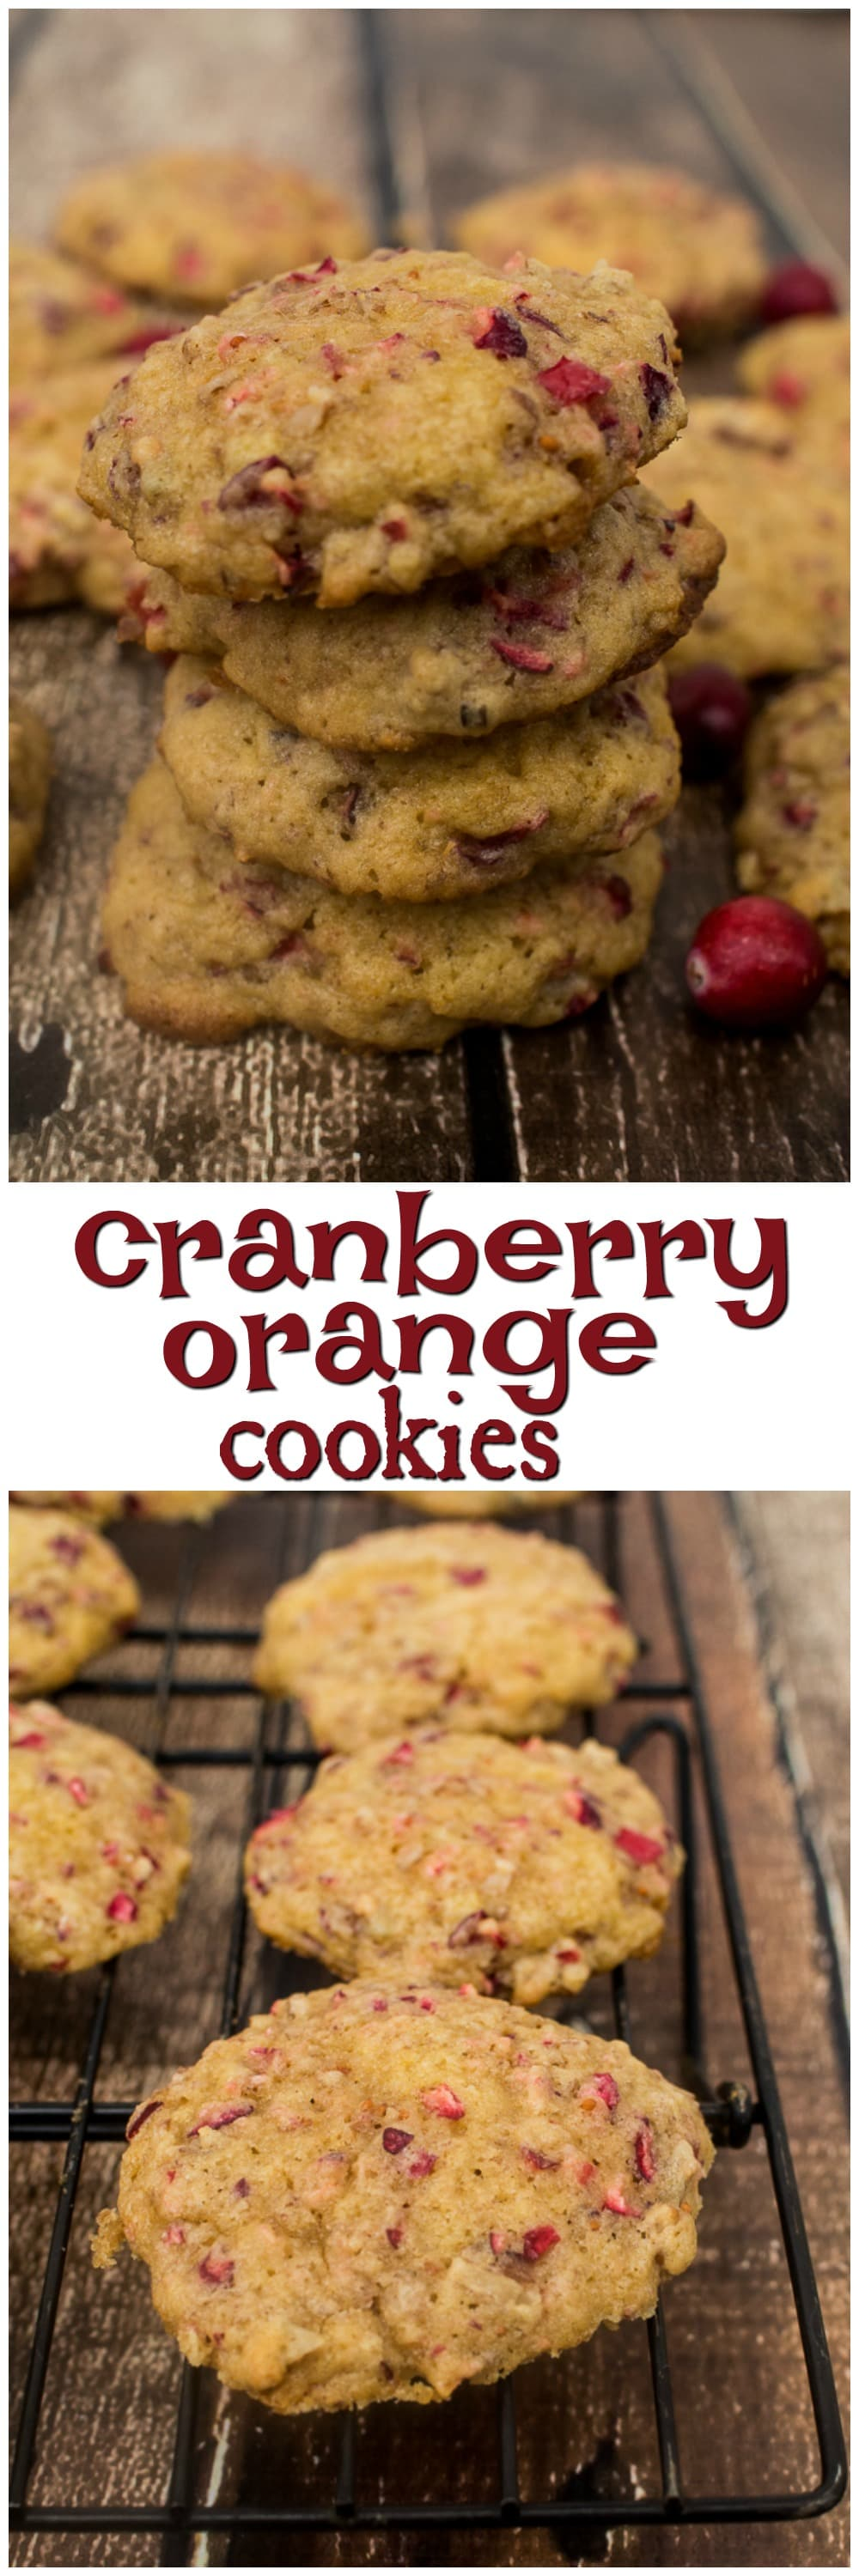 Cranberry Orange Cookies | Christmas Cookies | Holiday Cookies | Homemade Recipes for the Holidays | Cookie Exchange